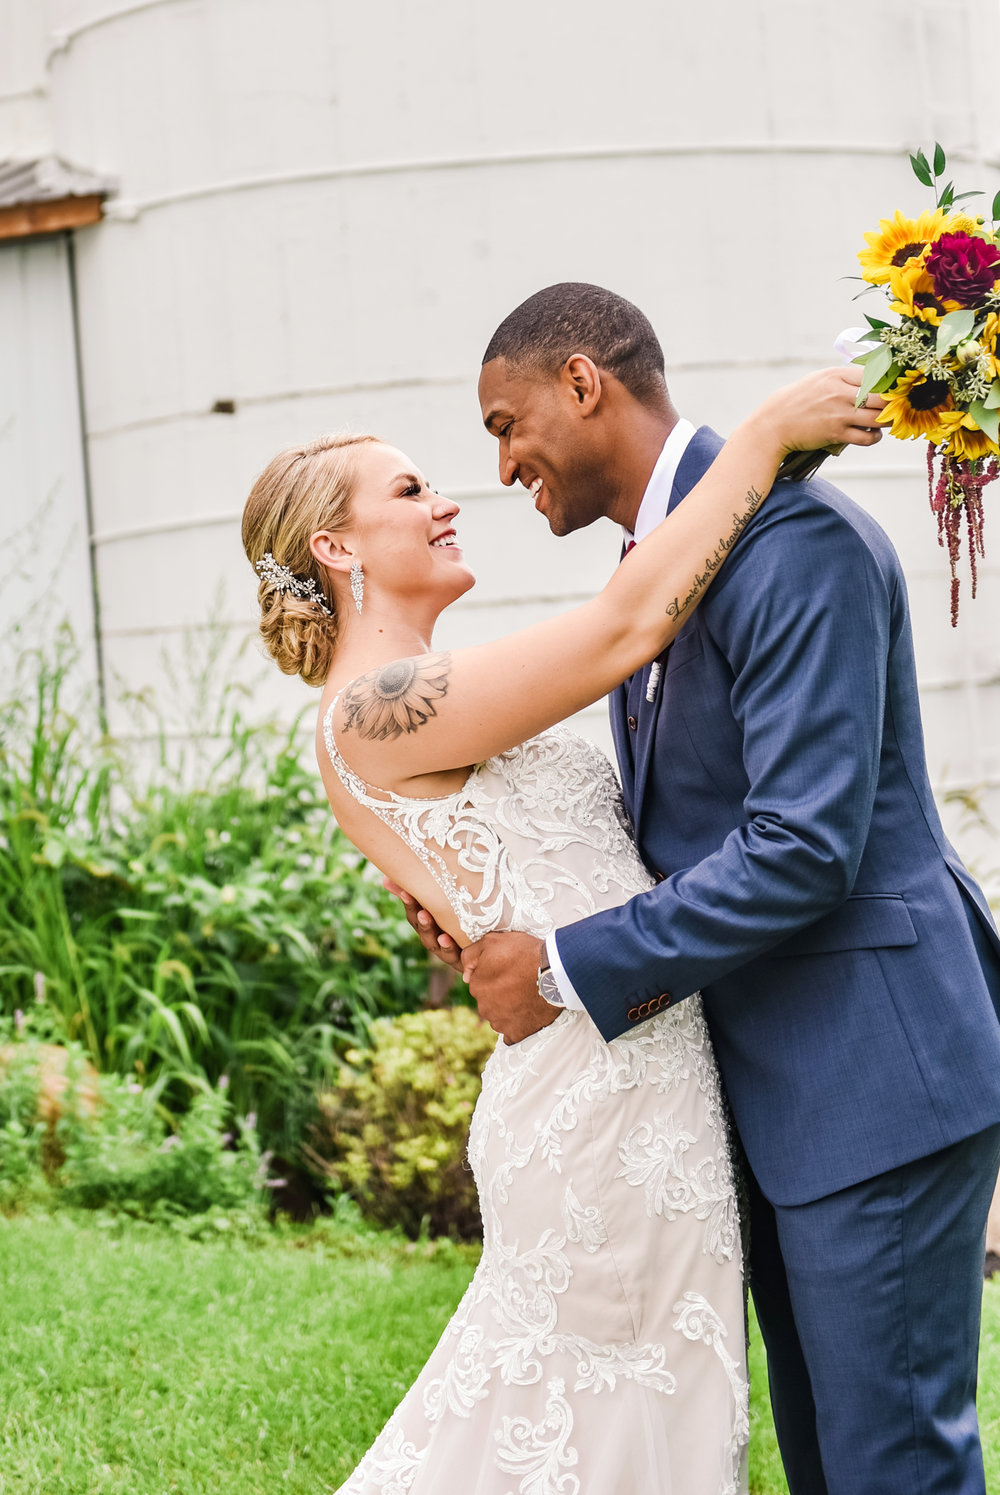 Cobblestone_Wedding_Barn_Rochester_Wedding_JILL_STUDIO_Rochester_NY_Photographer_DSC_7428.jpg